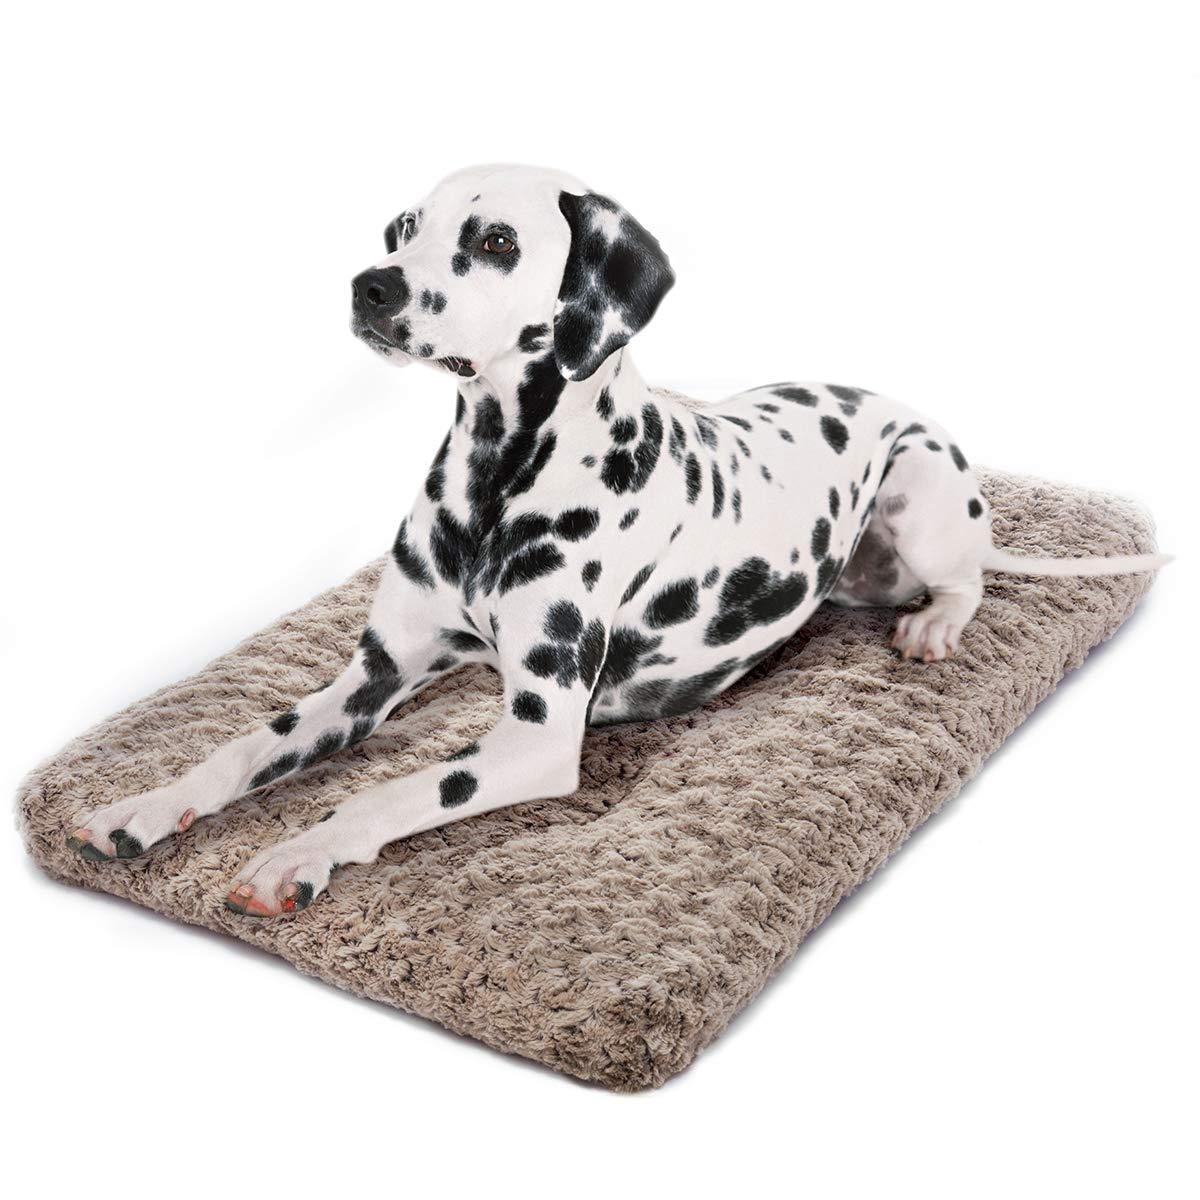 JOEJOY Dog Bed Ultra Soft Crate Pad Home Washable Mat for Large Dogs and Cats Crate (36-inch, Mocha)